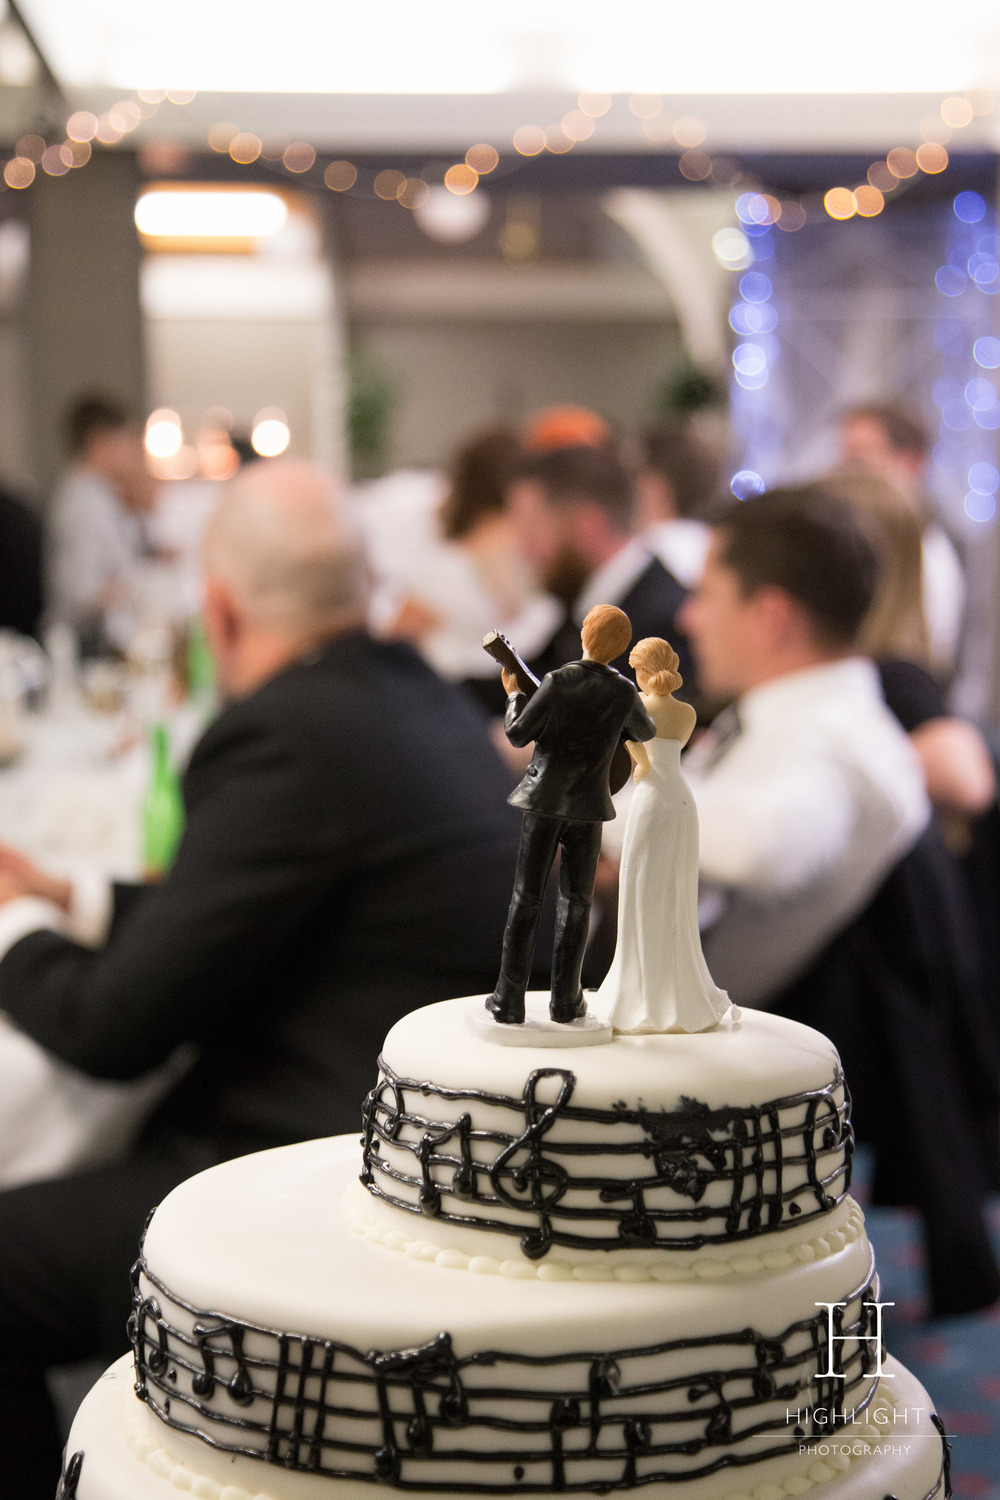 highlight-wedding-photography-palmerston-north-copthorne-cake.jpg